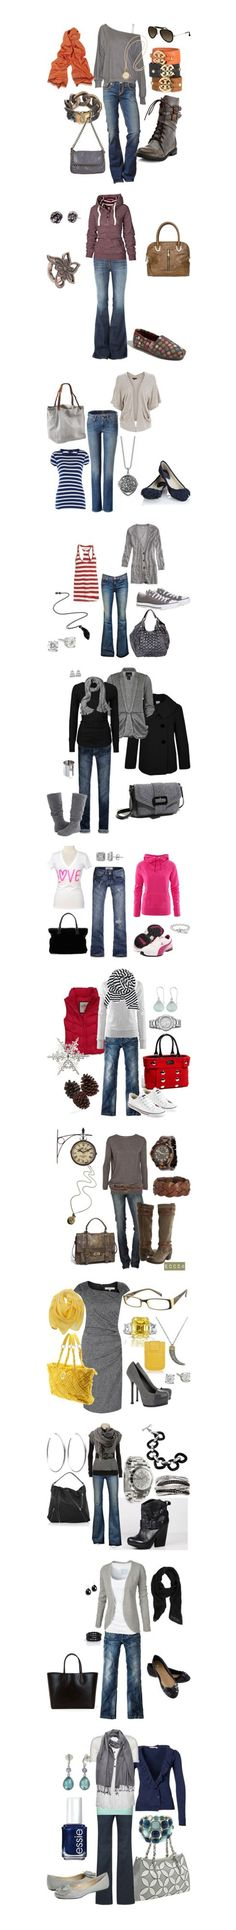 Latest Casual Winter Fashion Trends & Ideas 2013 For Girls & Women - See more at: http://www.girlshue.com/latest-casual-winter-fashion-trends-ideas-2013-for-girls-women/#sthash.NB0eHF0J.dpuf